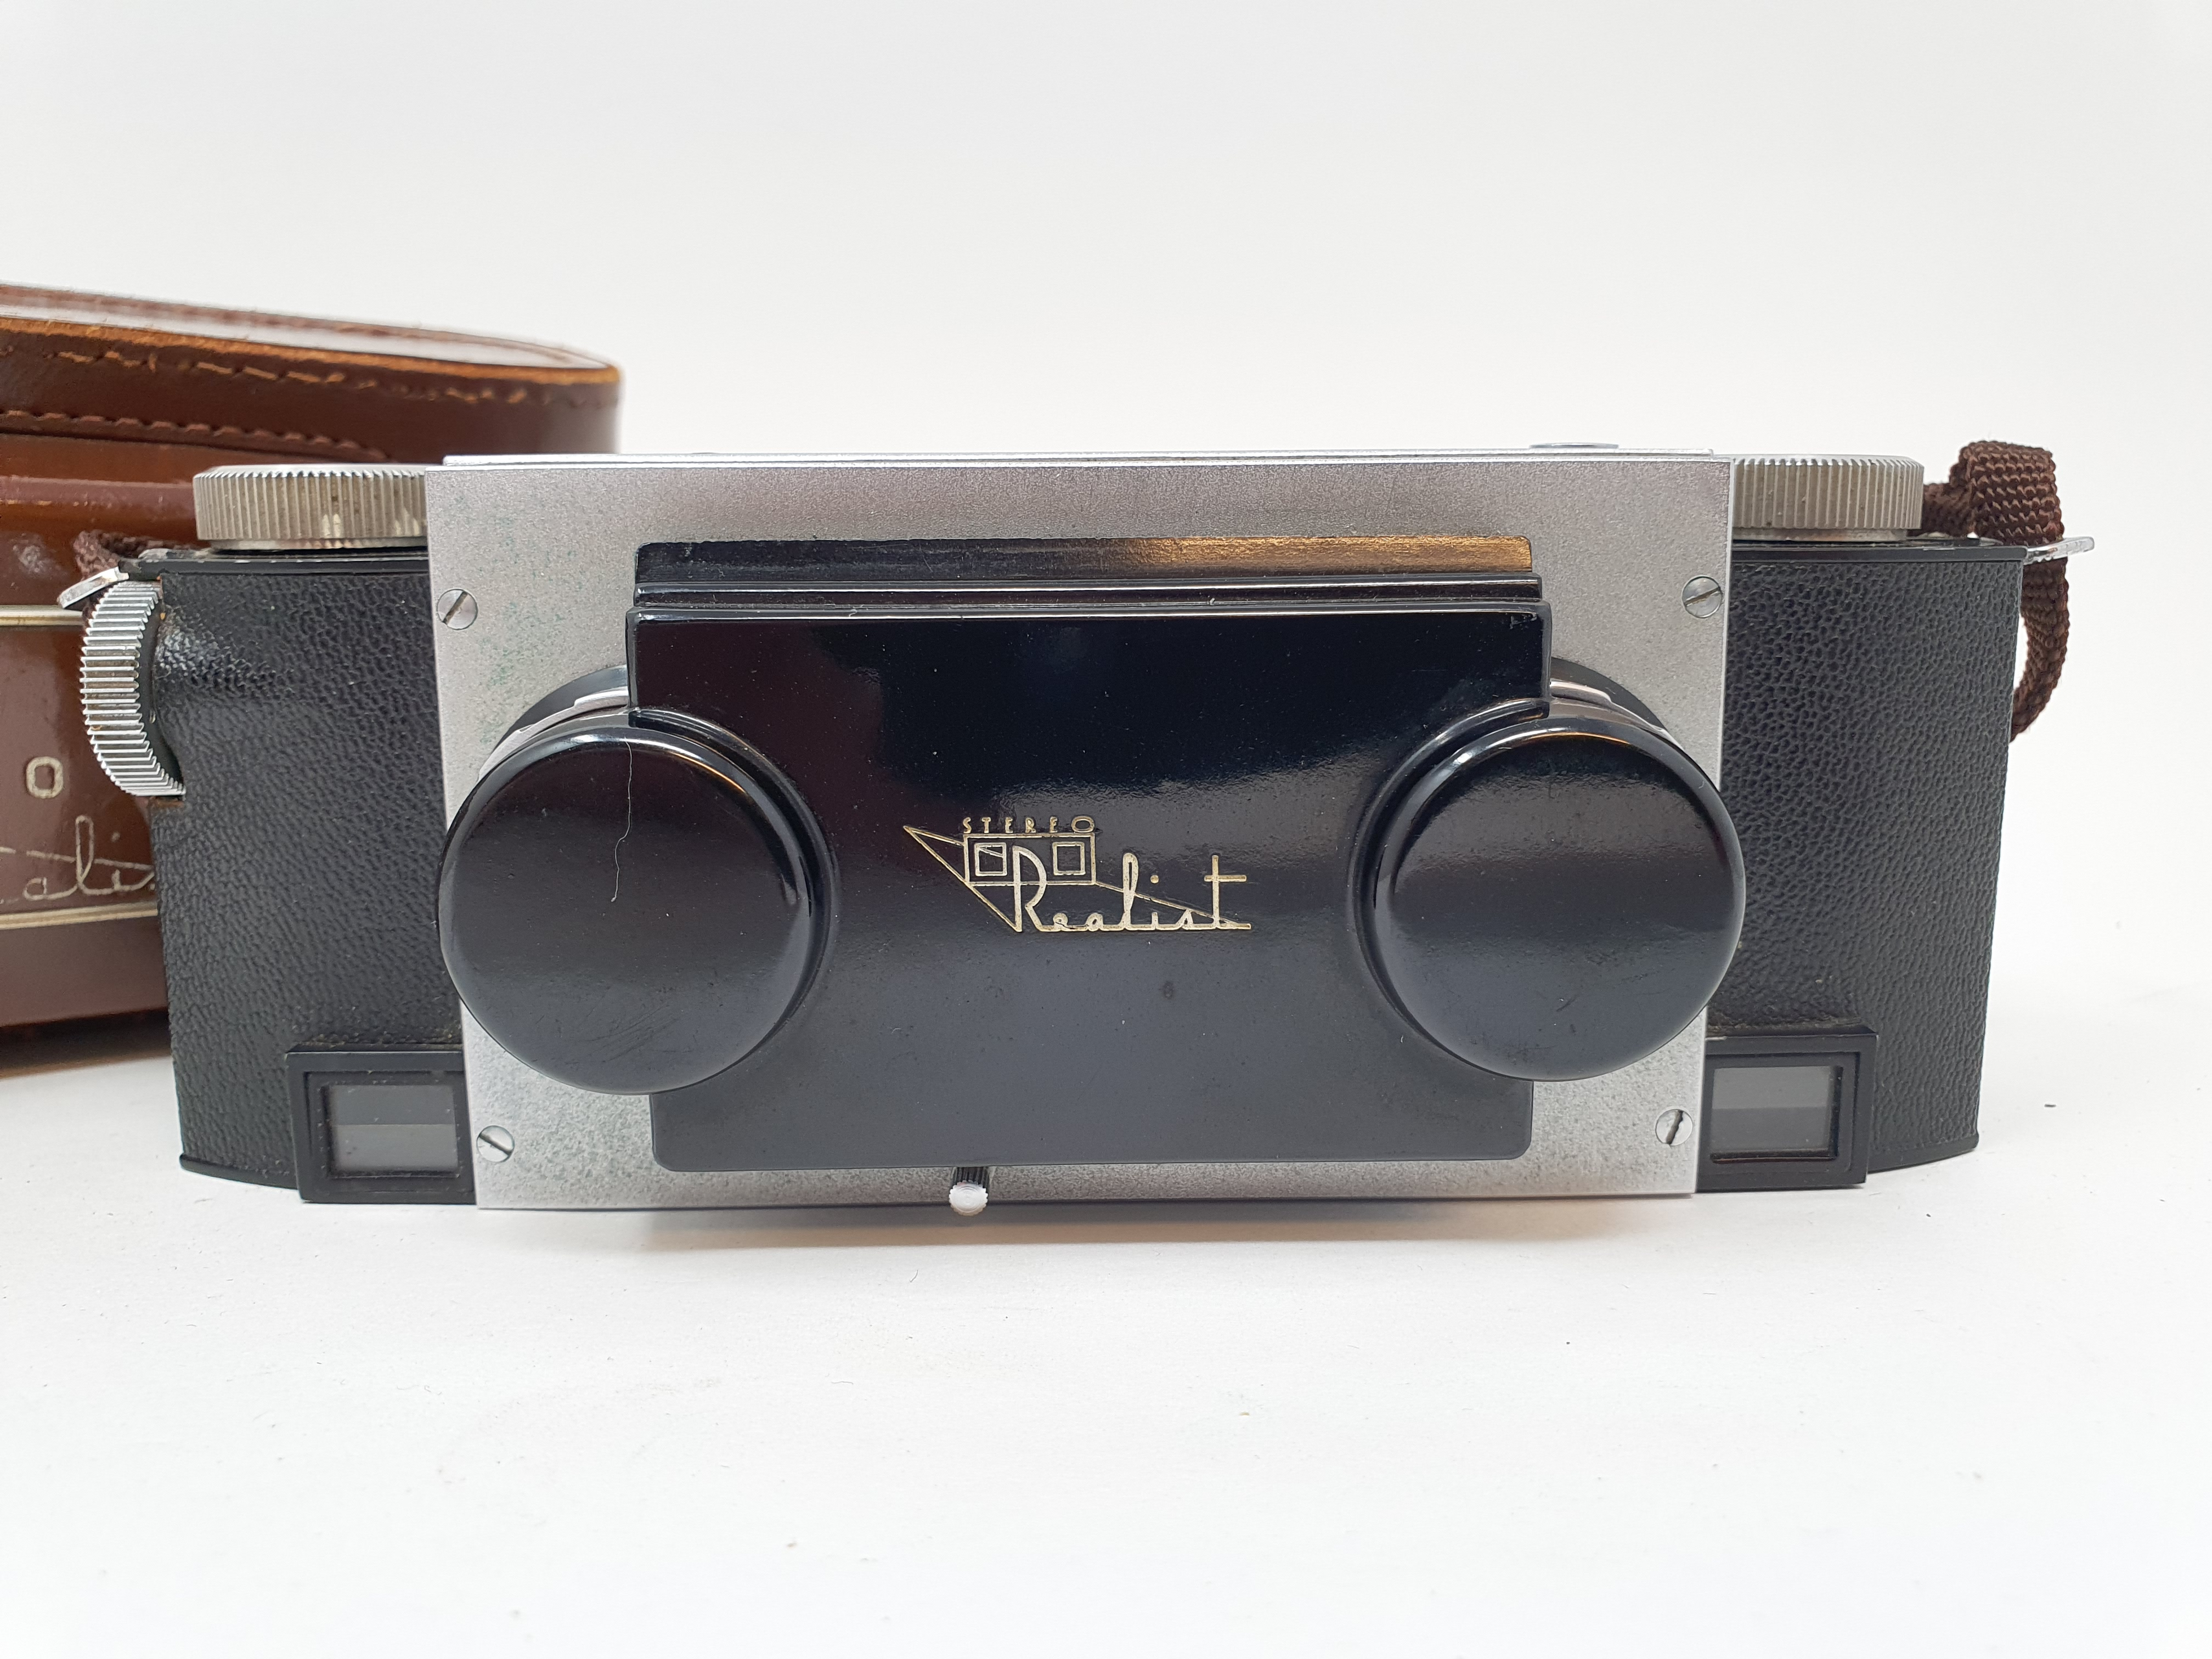 A Stereo Realist camera, with leather outer case Provenance: Part of a vast single owner - Image 3 of 6